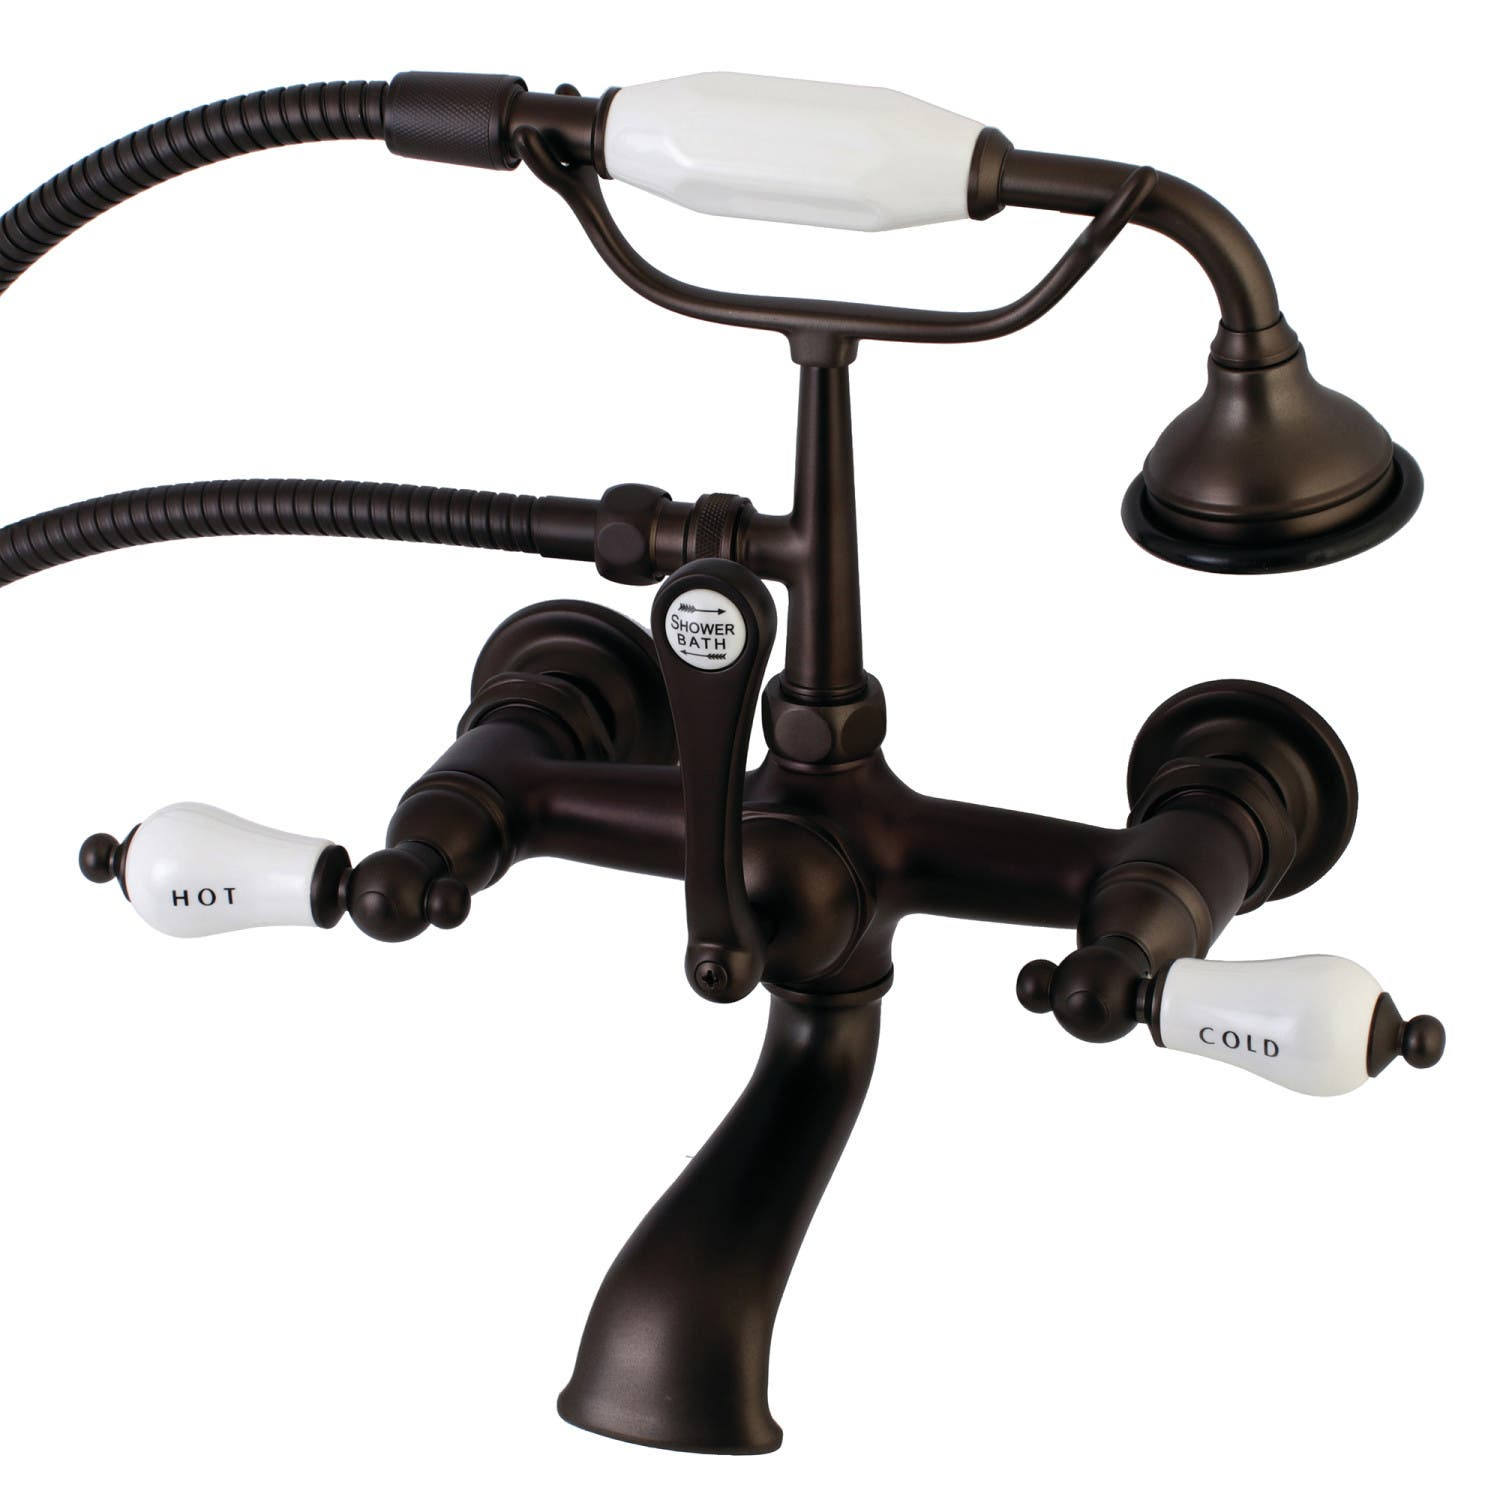 Aqua Vintage AE555T5 Clawfoot Tub Faucet with Hand Shower, Oil ...